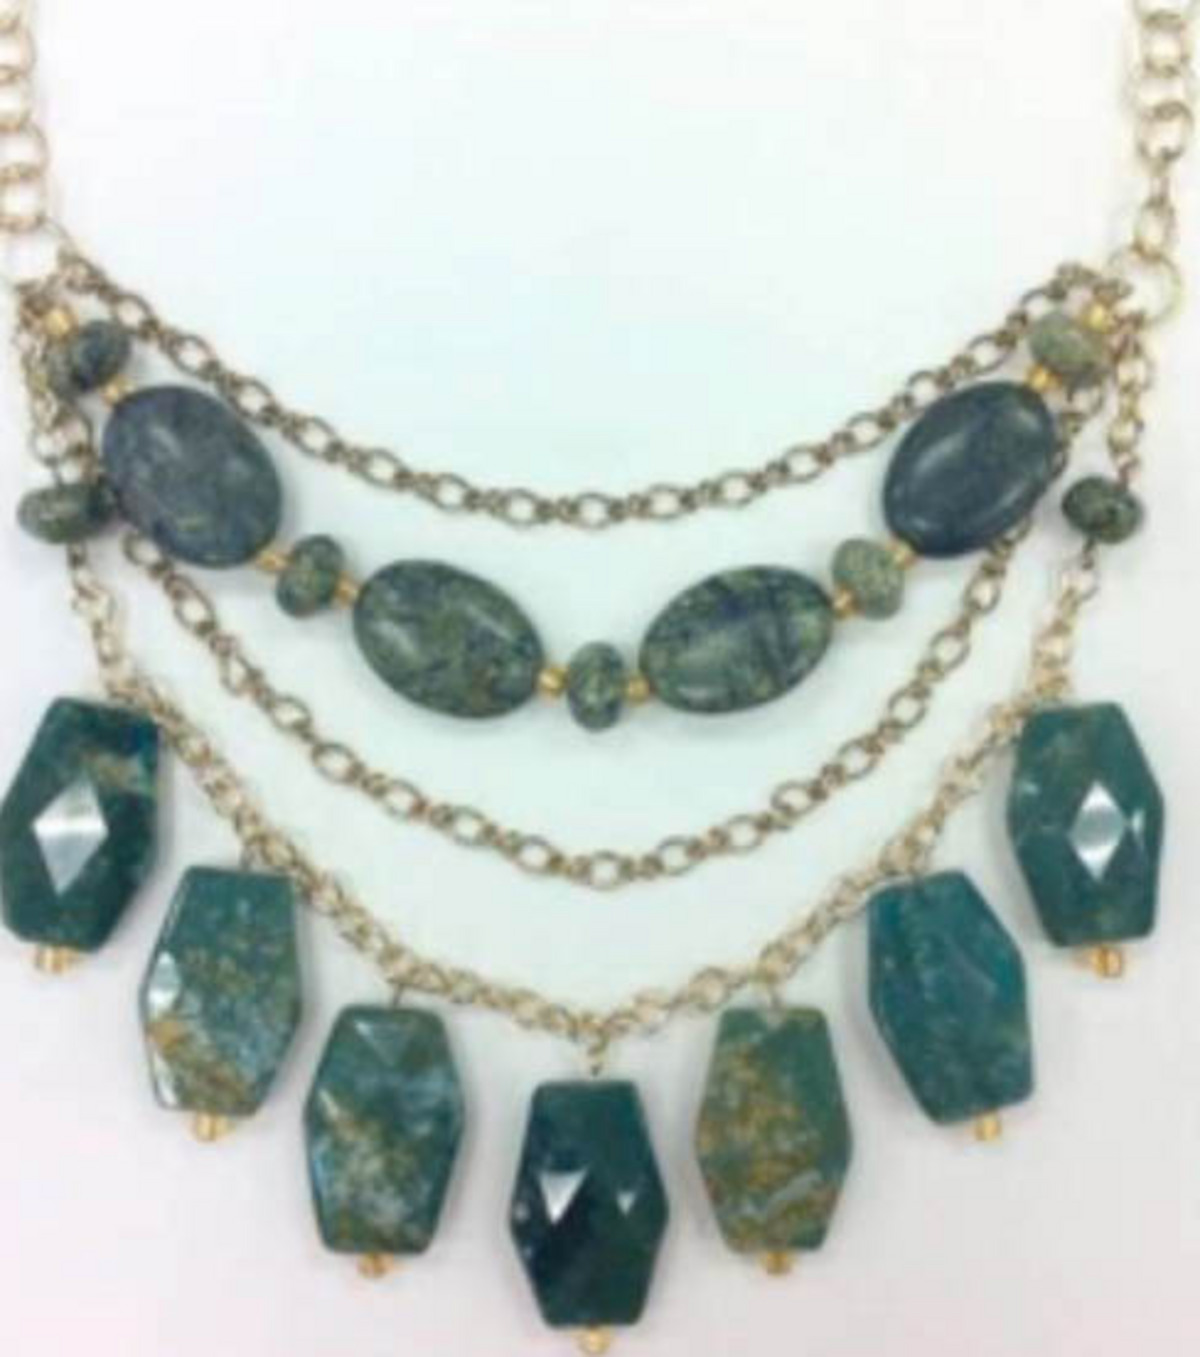 Moss Agate Statement Necklace